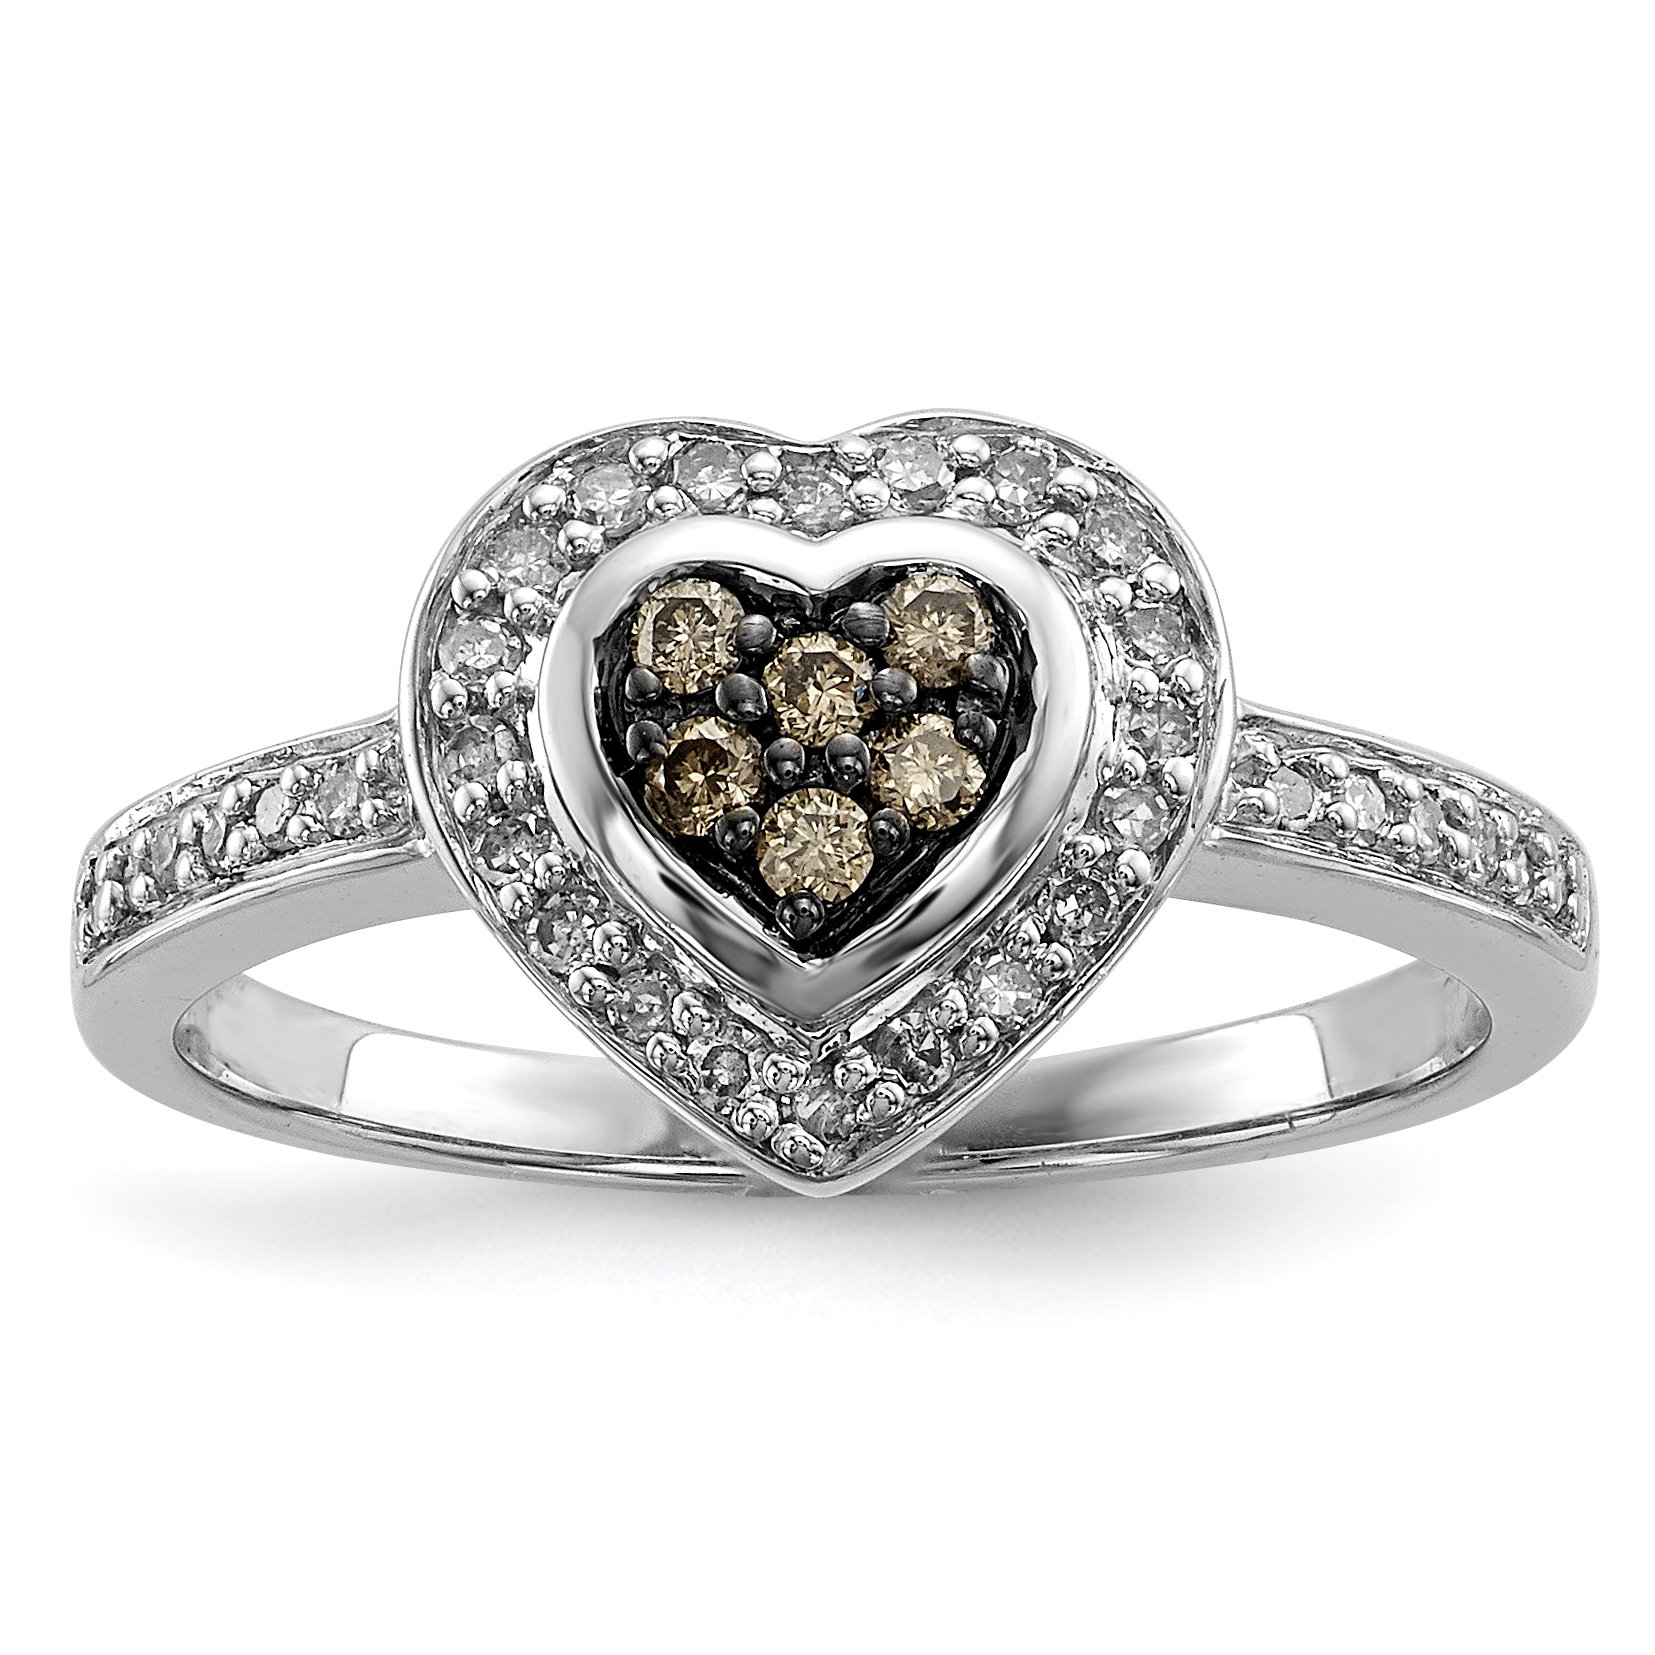 ICE CARATS 925 Sterling Silver Champagne Diamond Small Heart Band Ring Size 8.00 S/love Fine Jewelry Gift Set For Women Heart